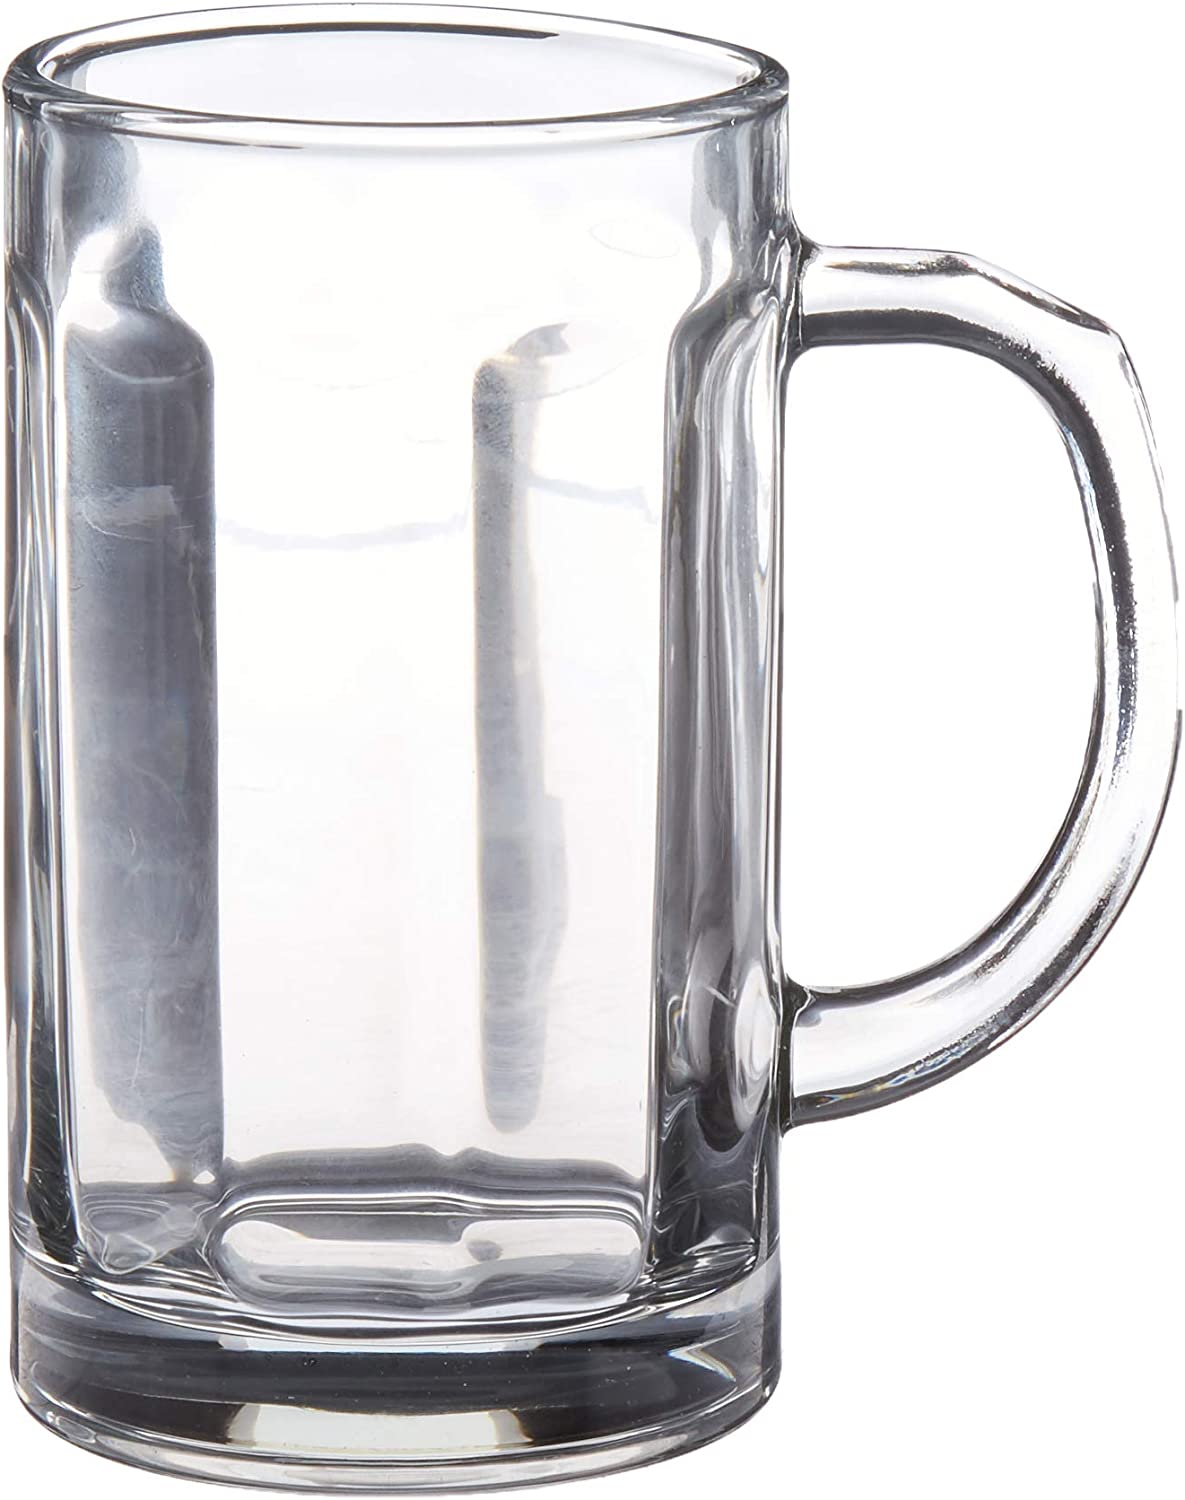 Circleware Glass Beer Mugs with Handle Set of 2 Heavy Base Fun Entertainment Glassware Beverage Drinking Cups for Water, Wine, Juice and Bar Dining Decor Novelty, 16.4 oz, Clear